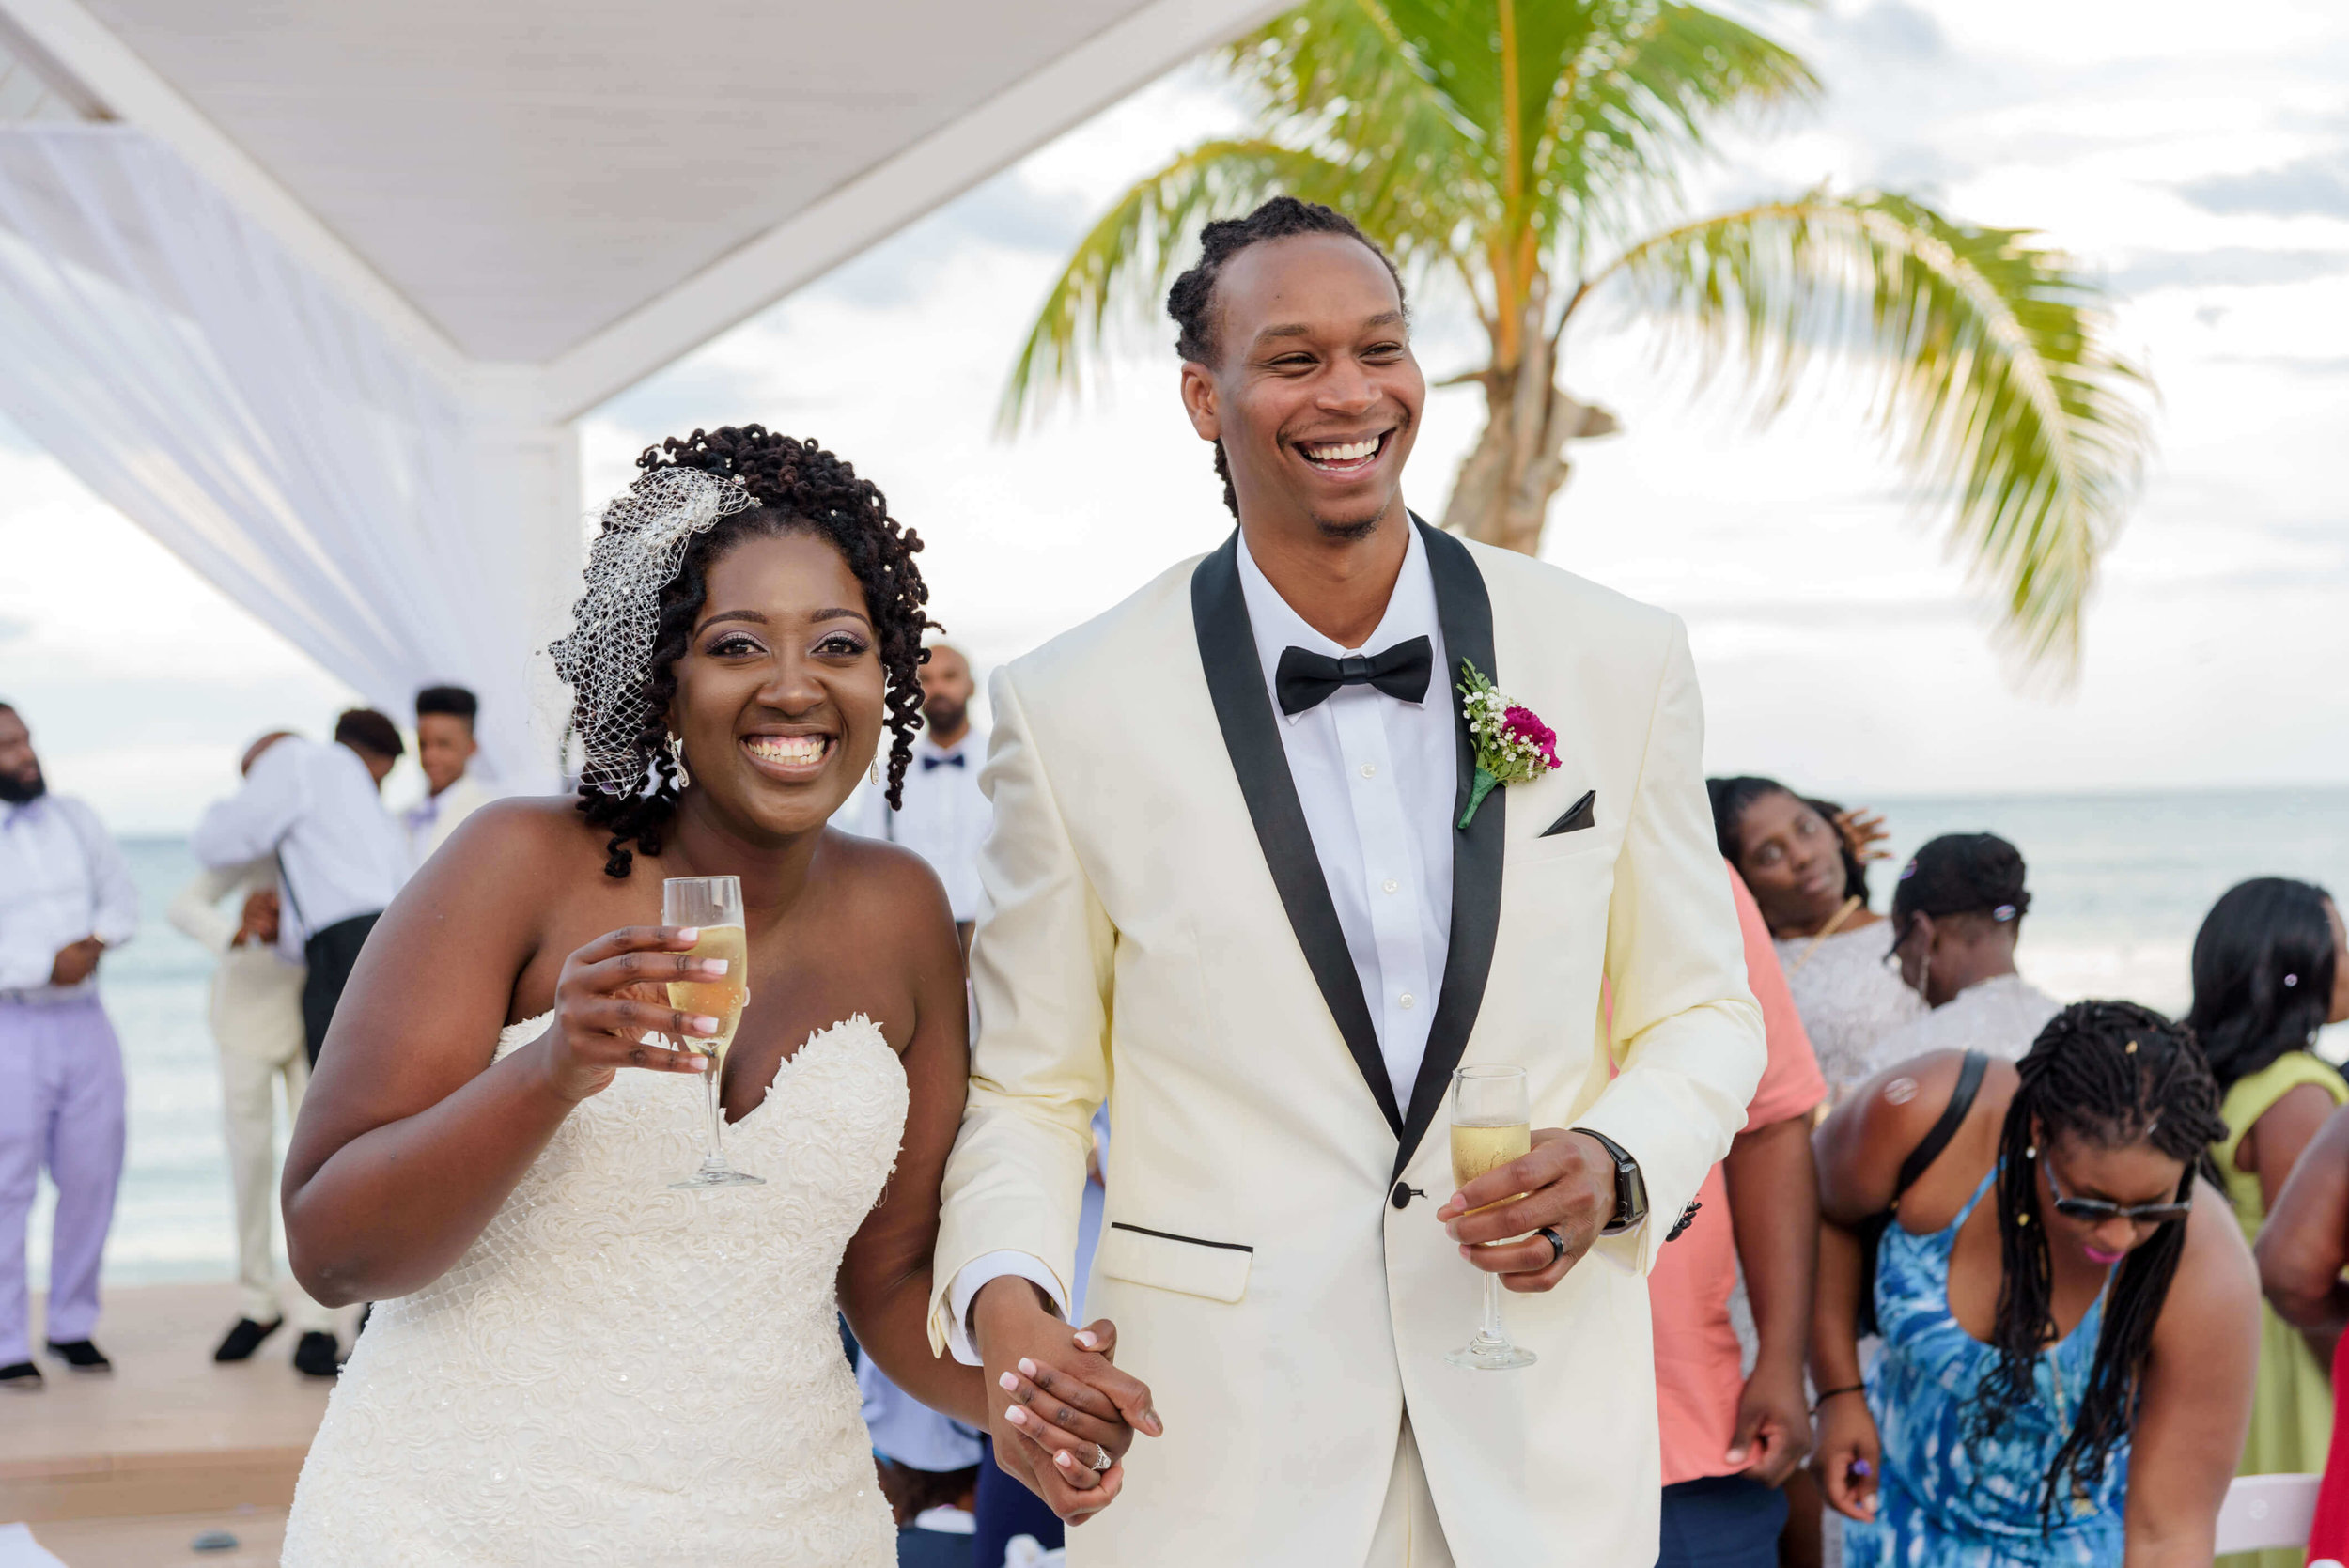 jamellah-how-to-plan-a-destination-wedding-in-montego-bay-jamaica-royalton-blue-waters-black-destination-bride-destiland-desti-guide-to-destination-weddings-couple-after-ceremony.jpg